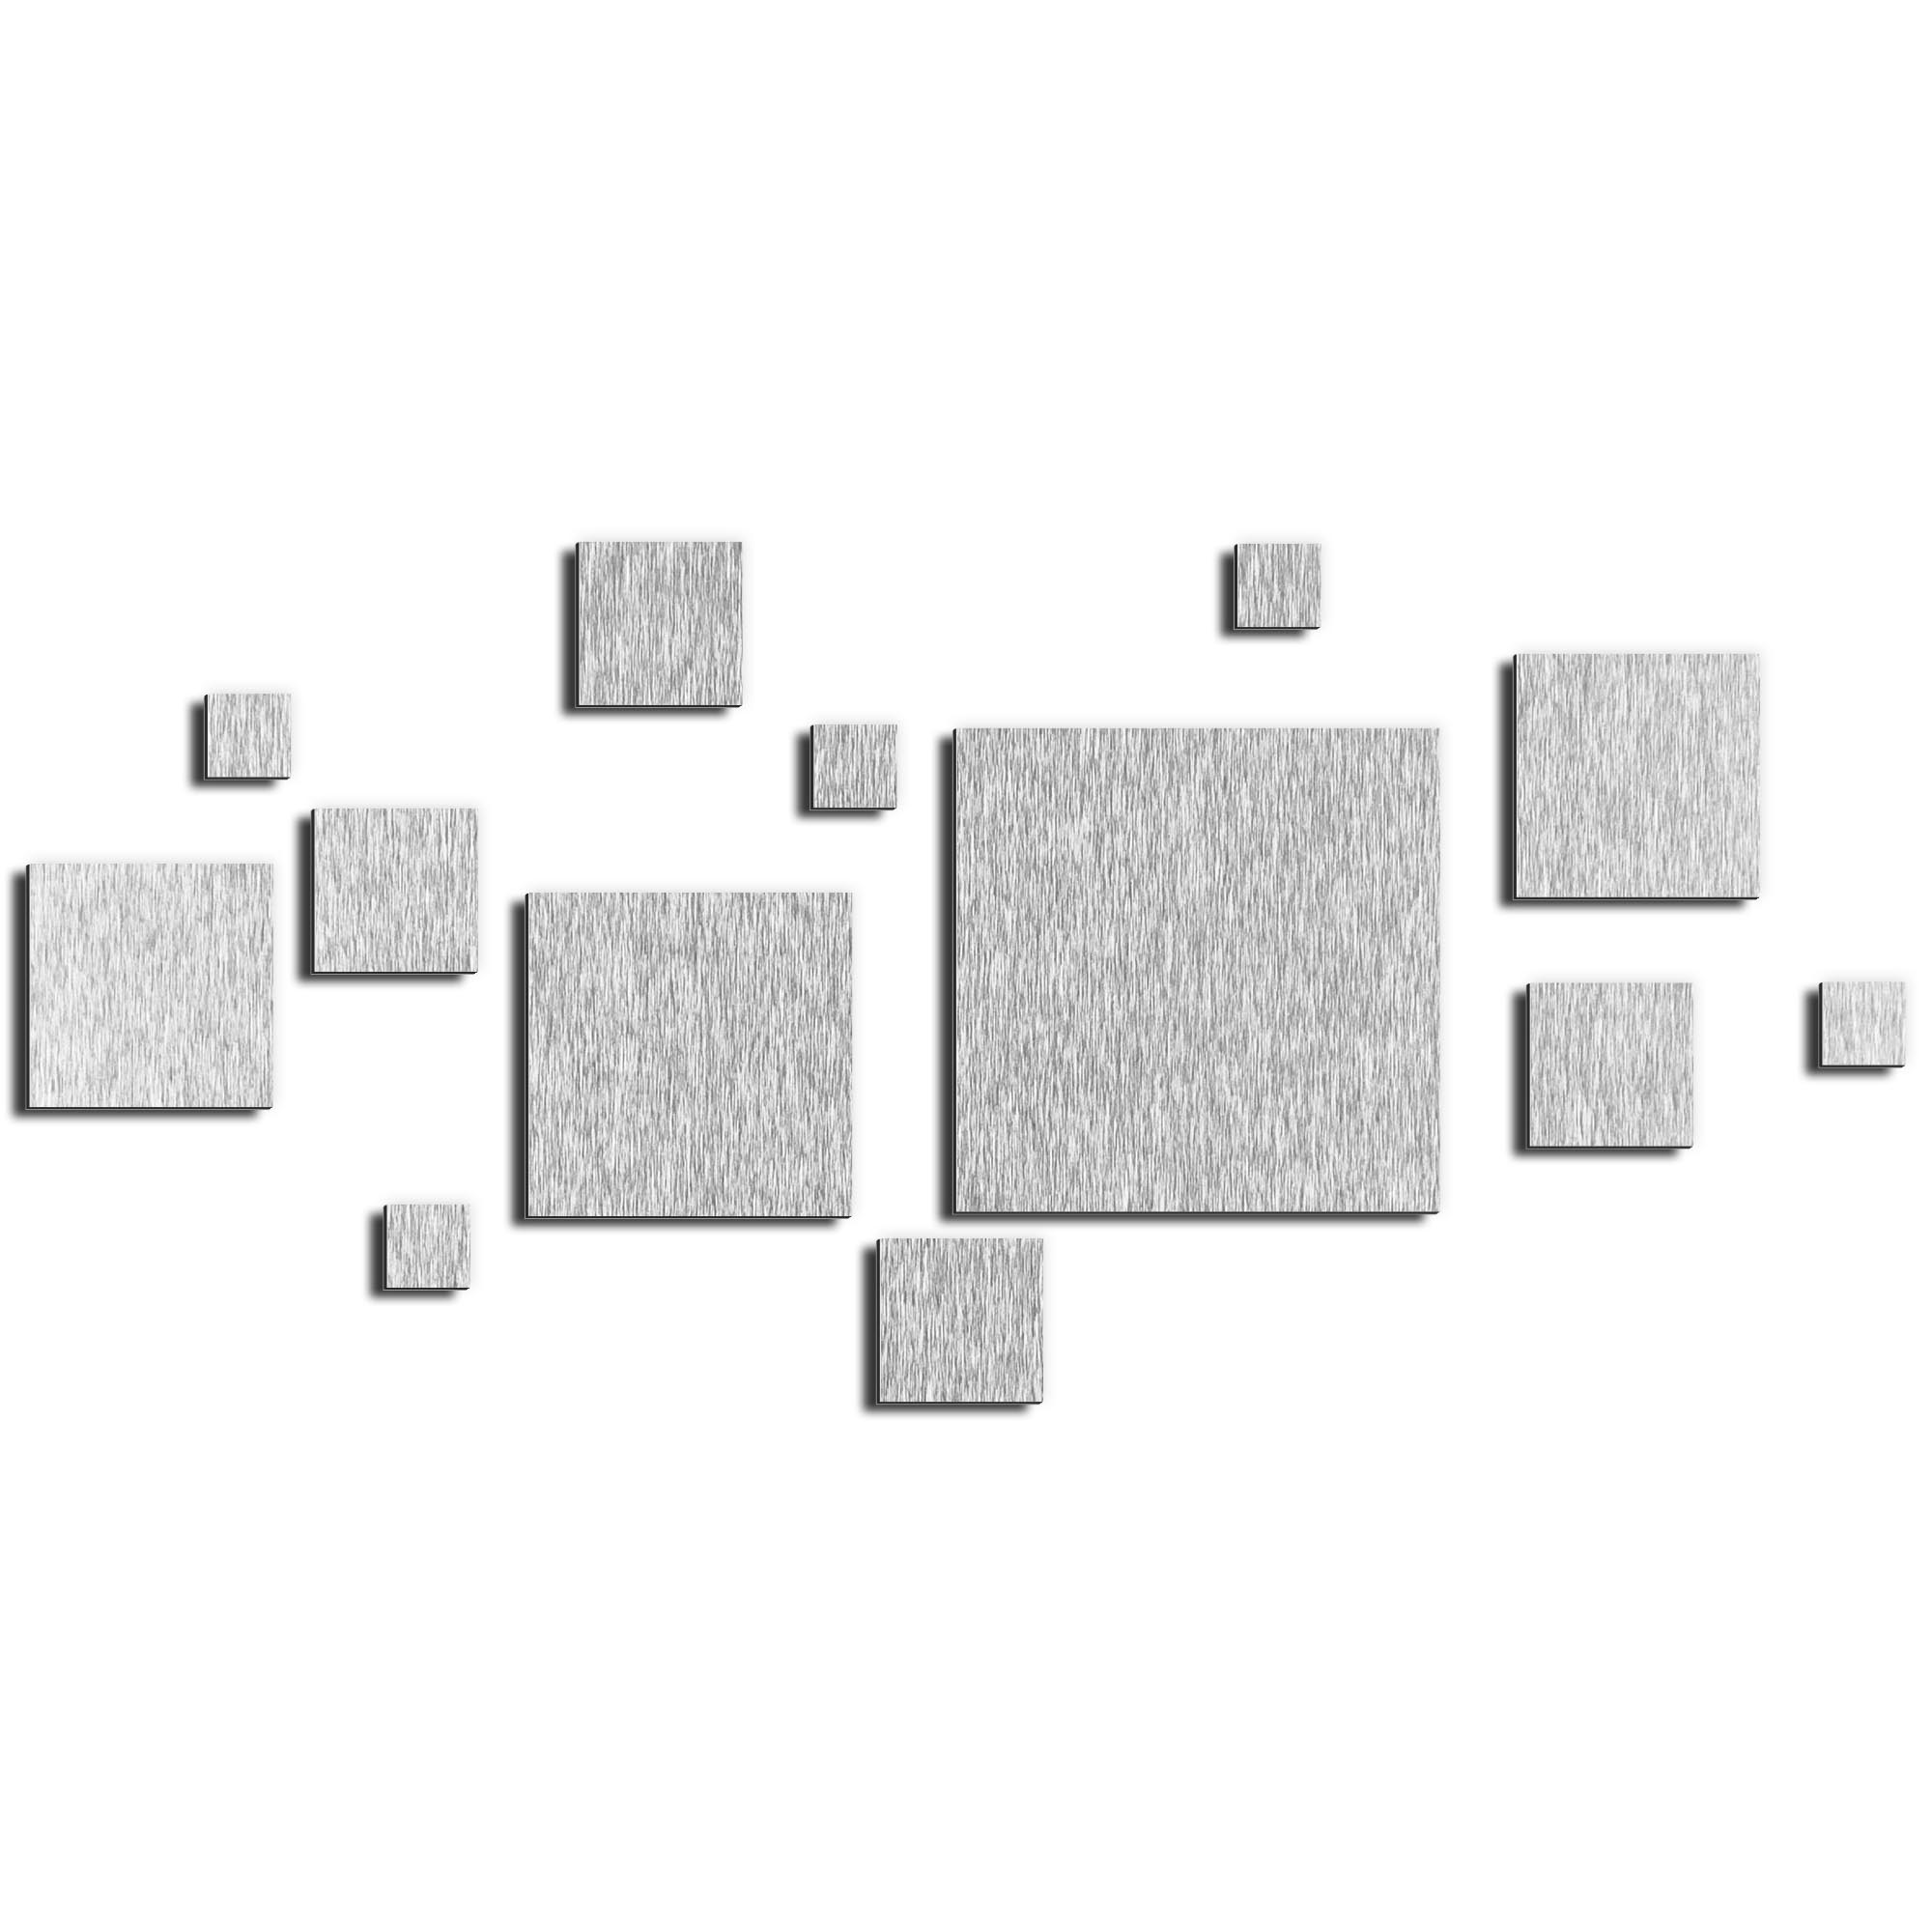 NAY 'Aerial Silver' 70in x 32in Squares Abstract Art on Aluminum Composite